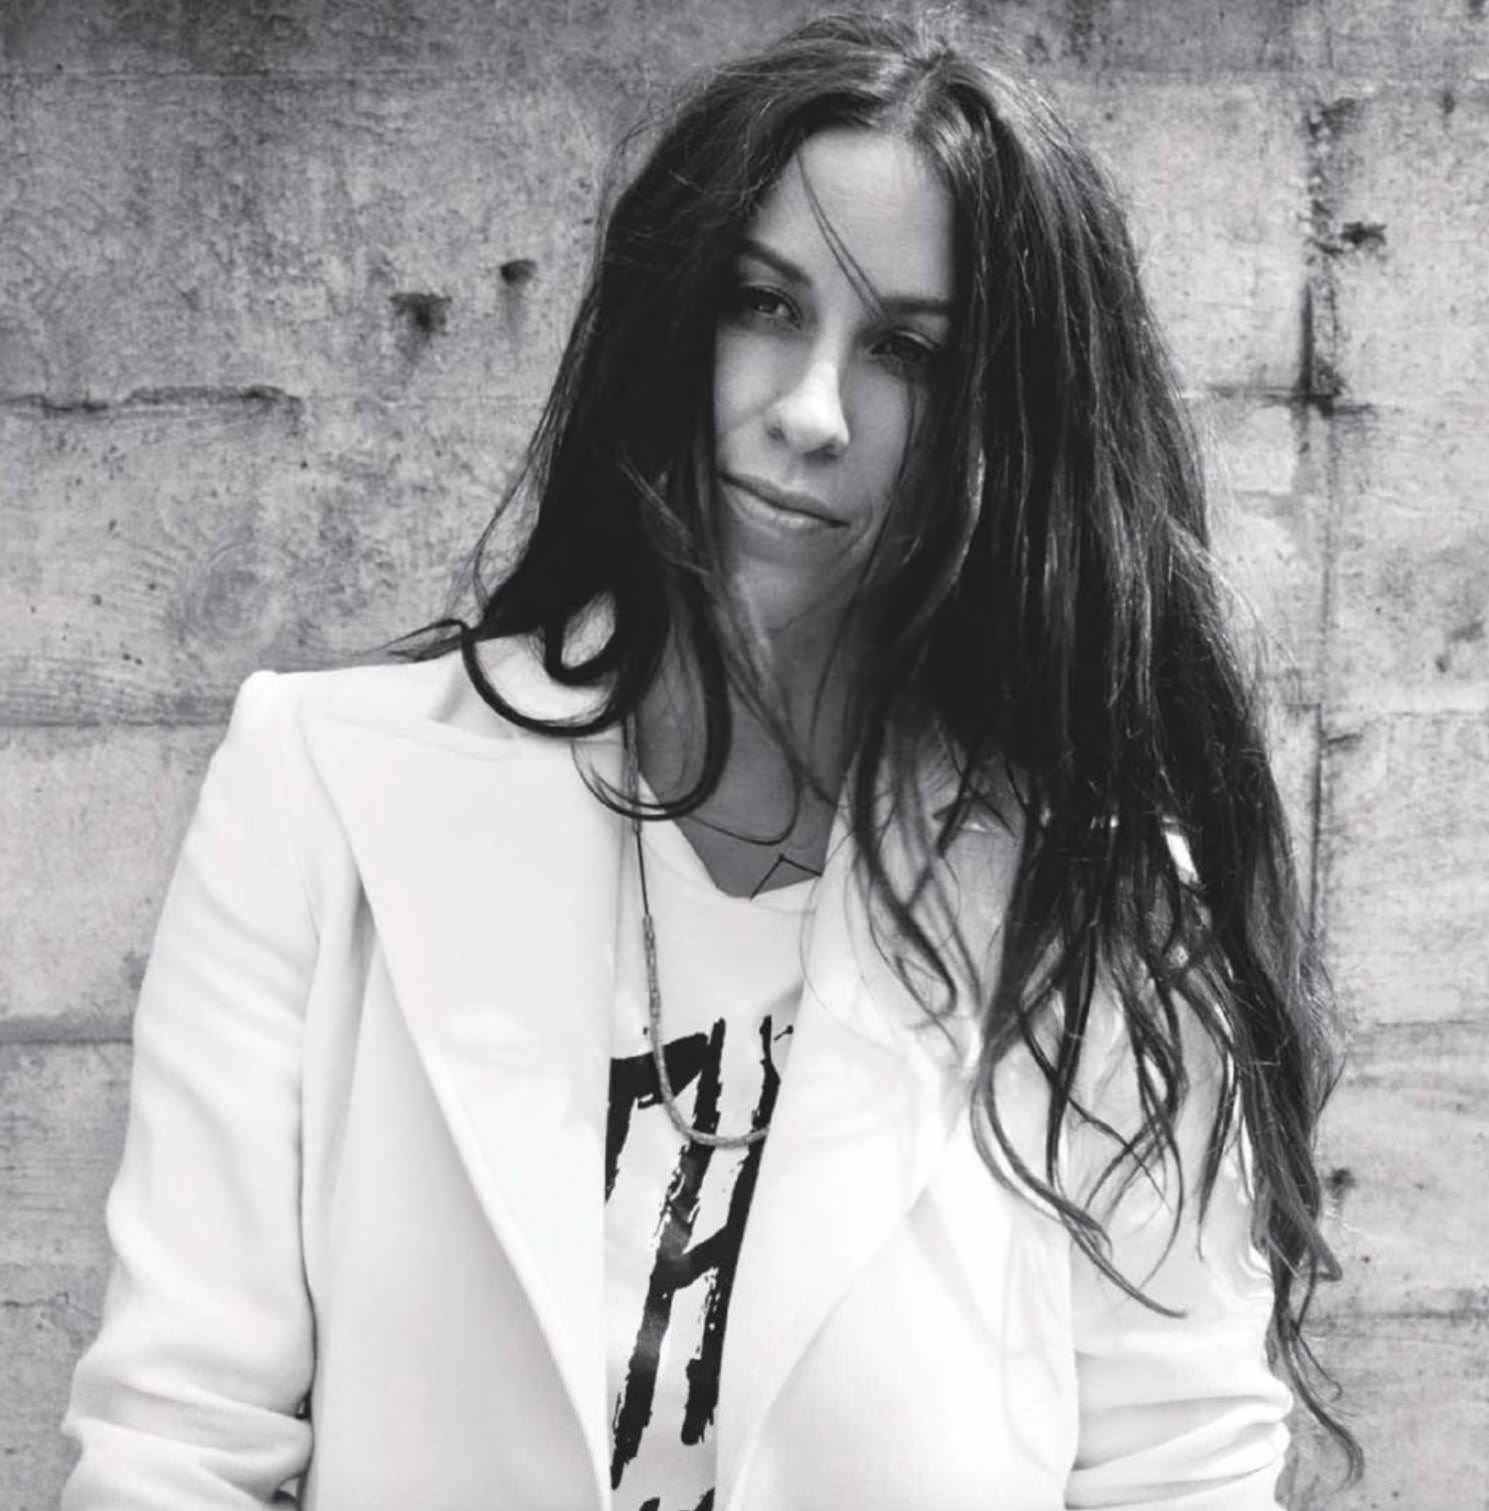 Alanis Morissette: When someone says I'm angry, it's a compliment'